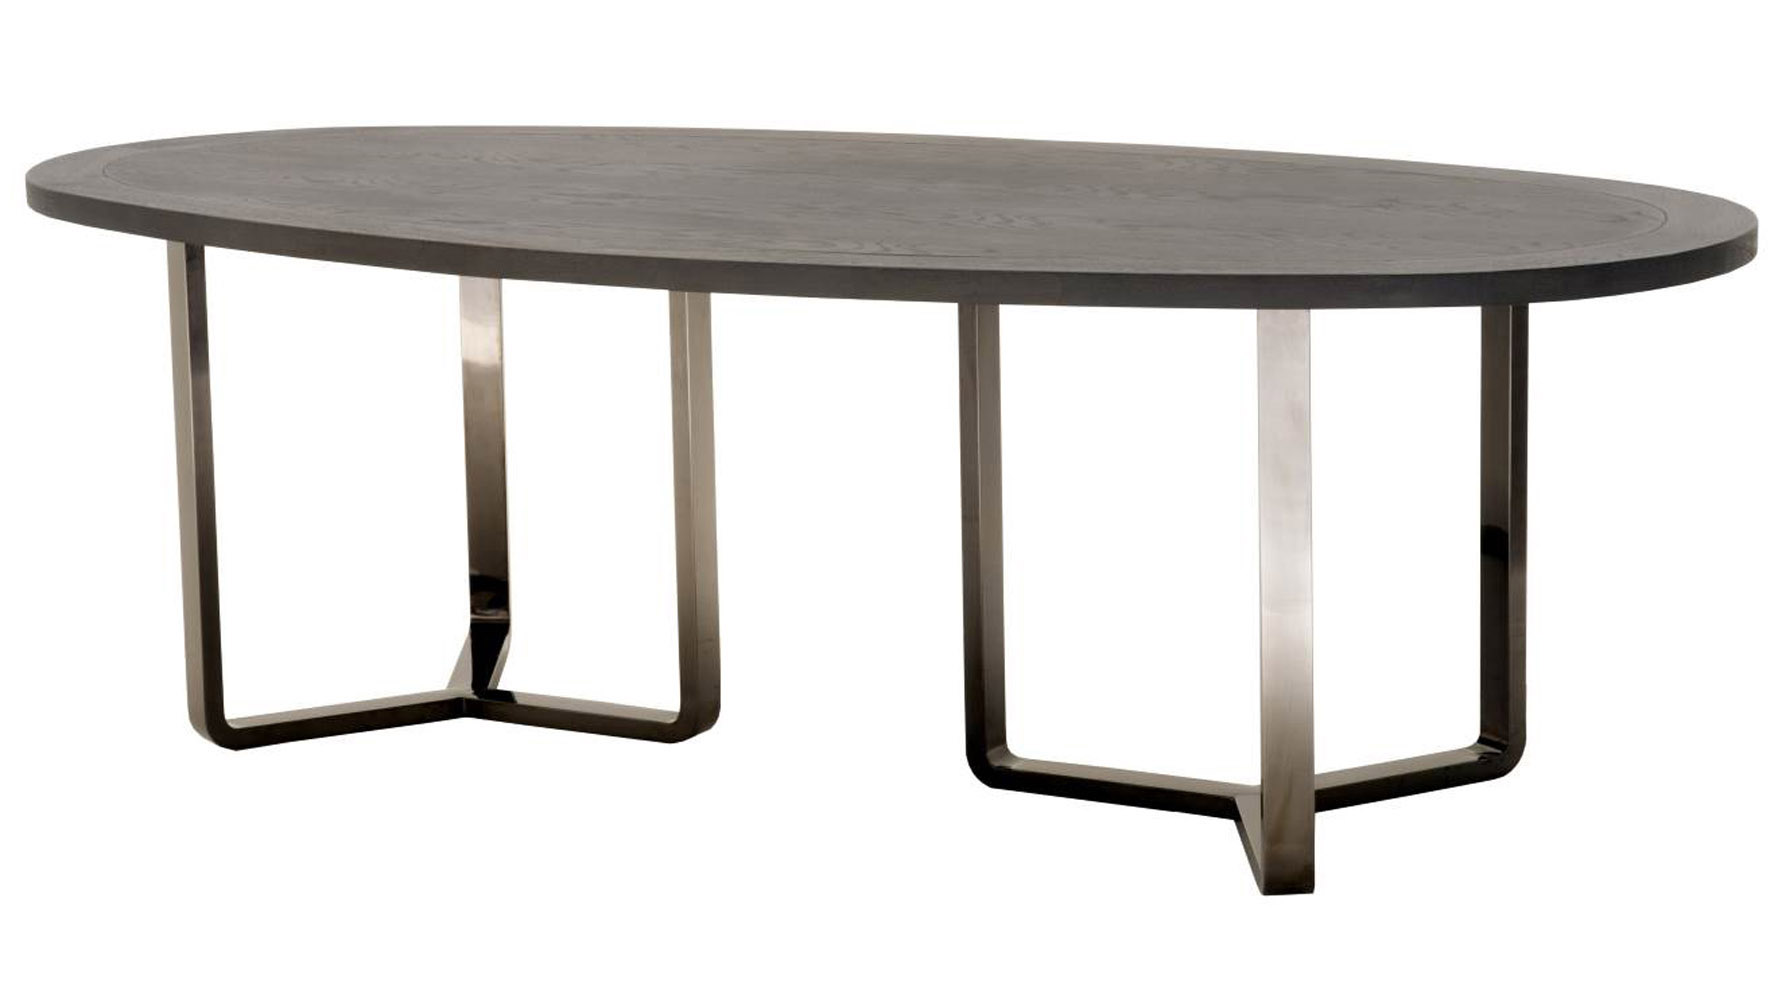 Jaffa Oval Oak Dining Table With Stainless Steel Base, Black | Zuri  Furniture